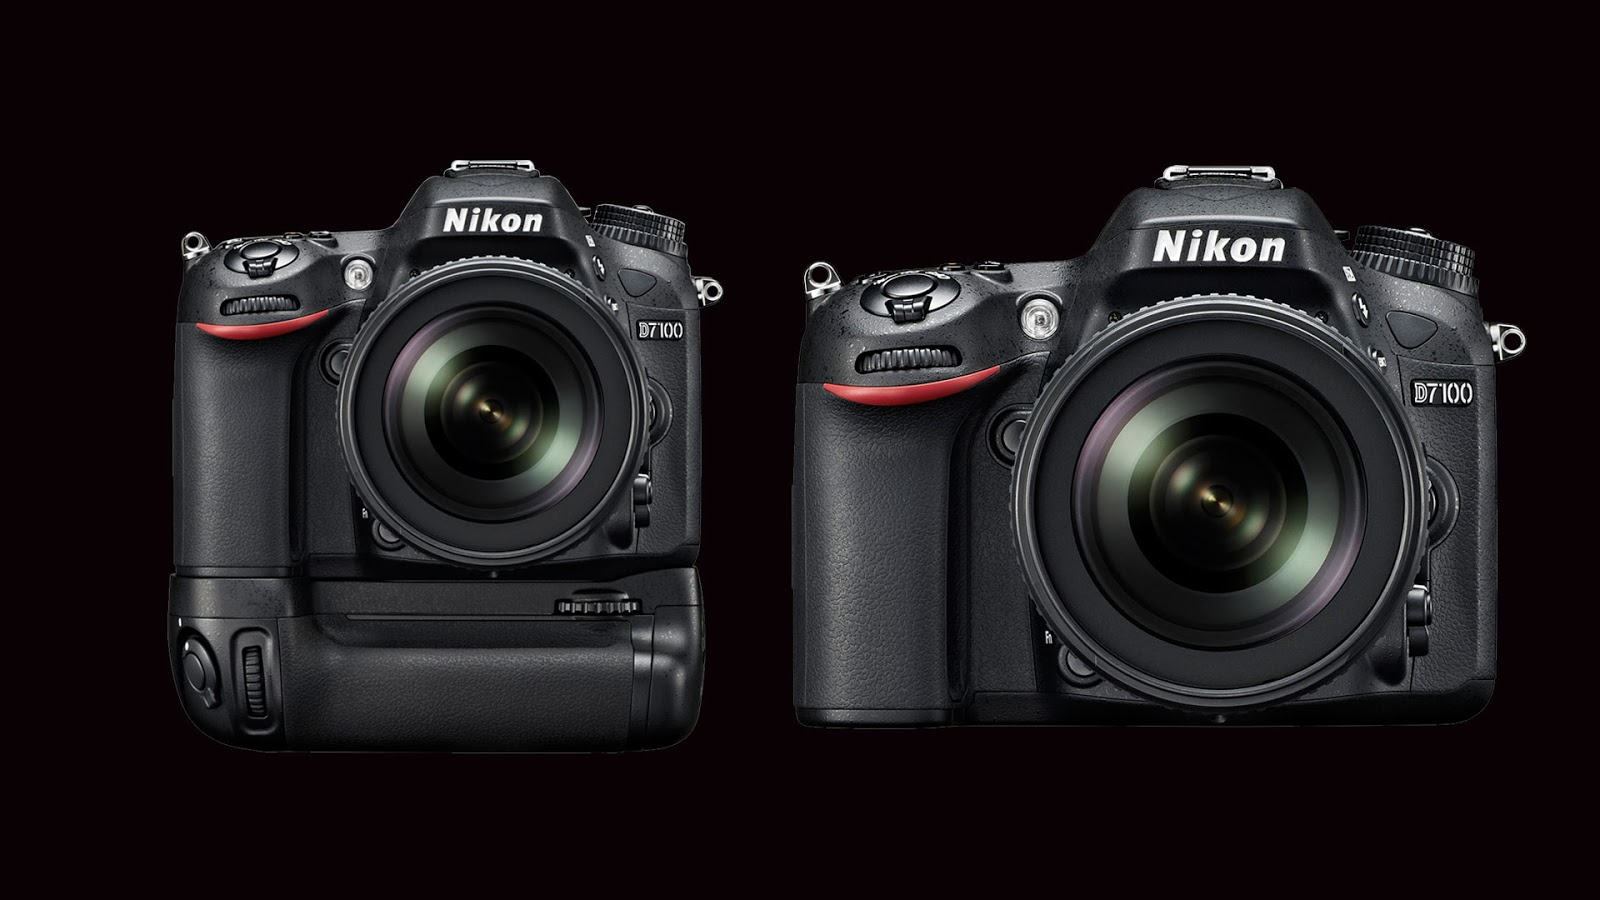 Camera Nikon Top 10 Dslr Cameras top 10 best dslr cameras rated 5 nikon d7100